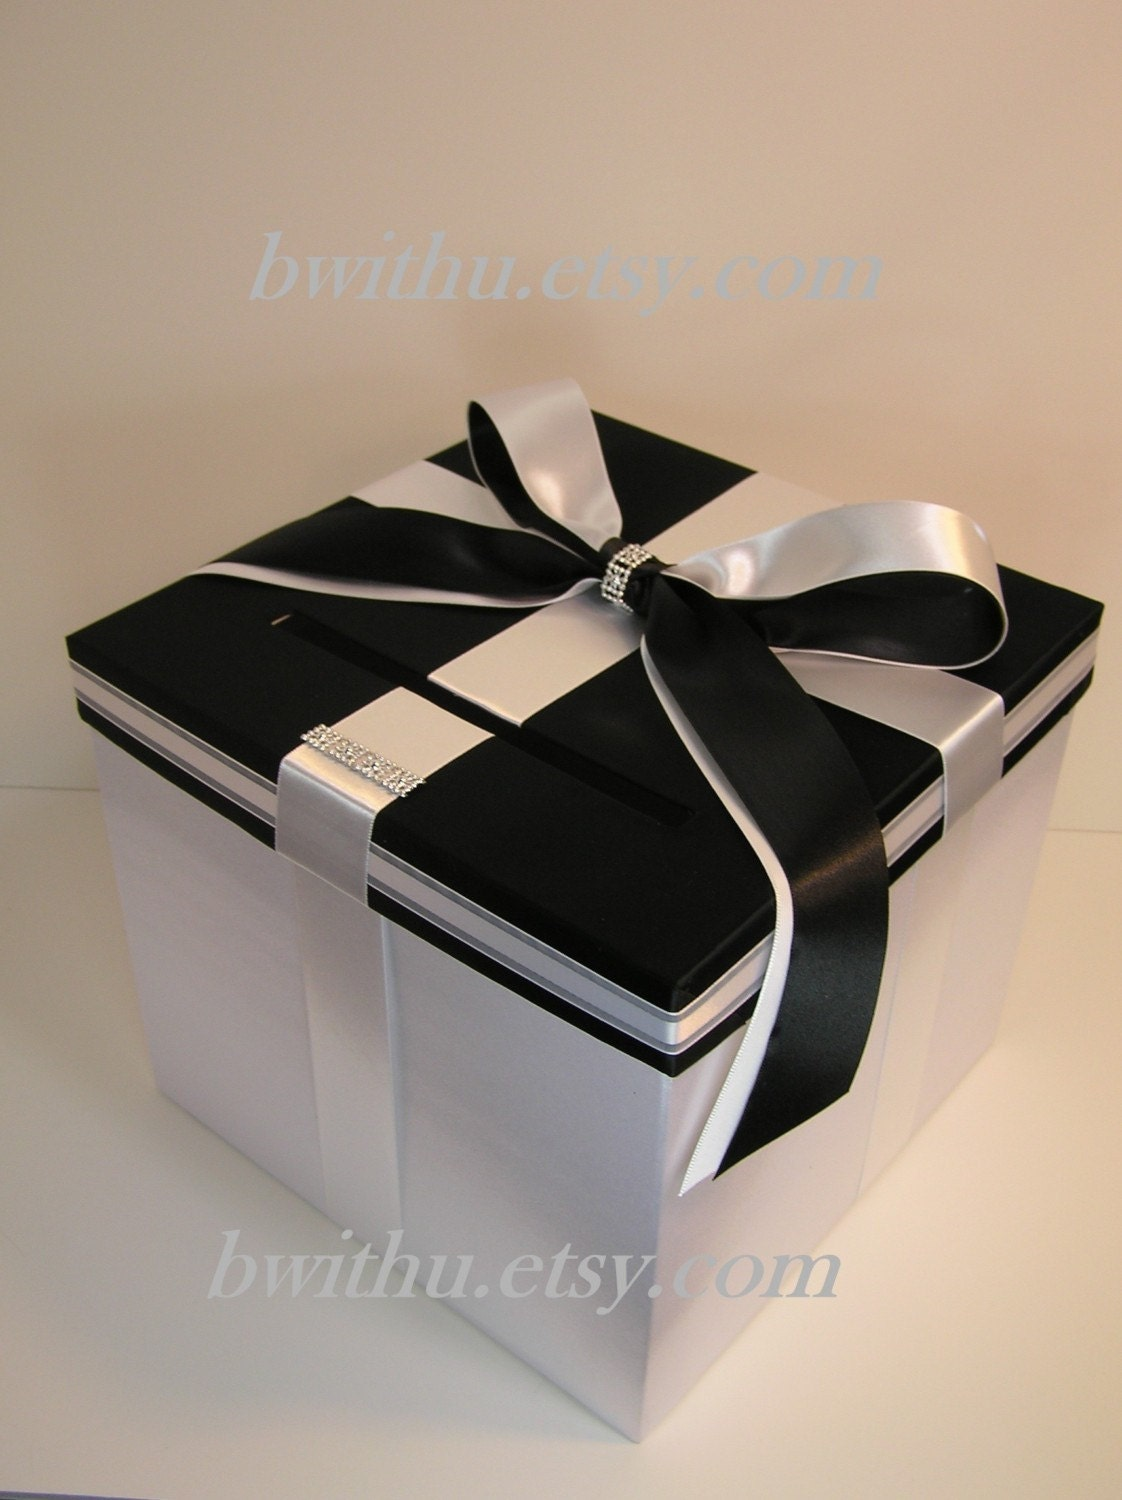 Black And White Wedding Gift Card Box : Wedding Card Box Black and White Gift Card Box Money Box